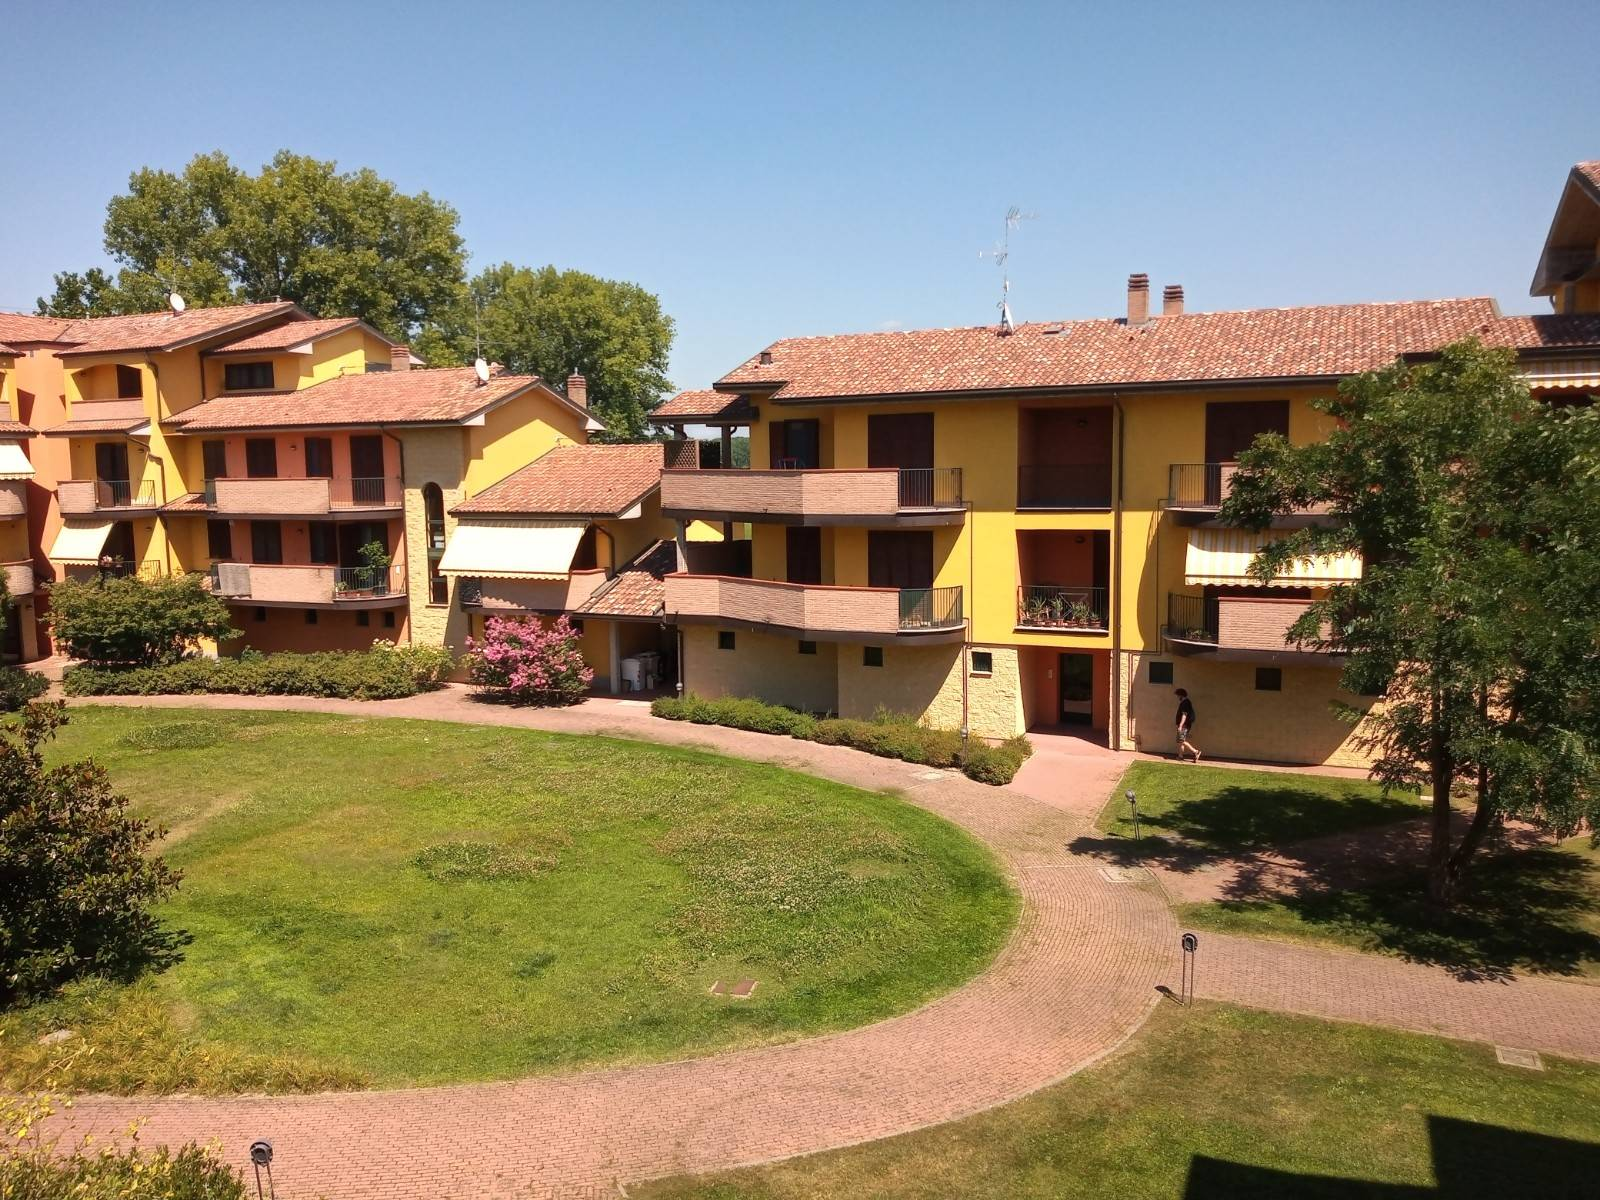 RIOLO, LODI, Apartment for sale of 61 Sq. mt., Good condition, Heating Individual heating system, Energetic class: D, Epi: 32,82 kwh/m2 year, placed